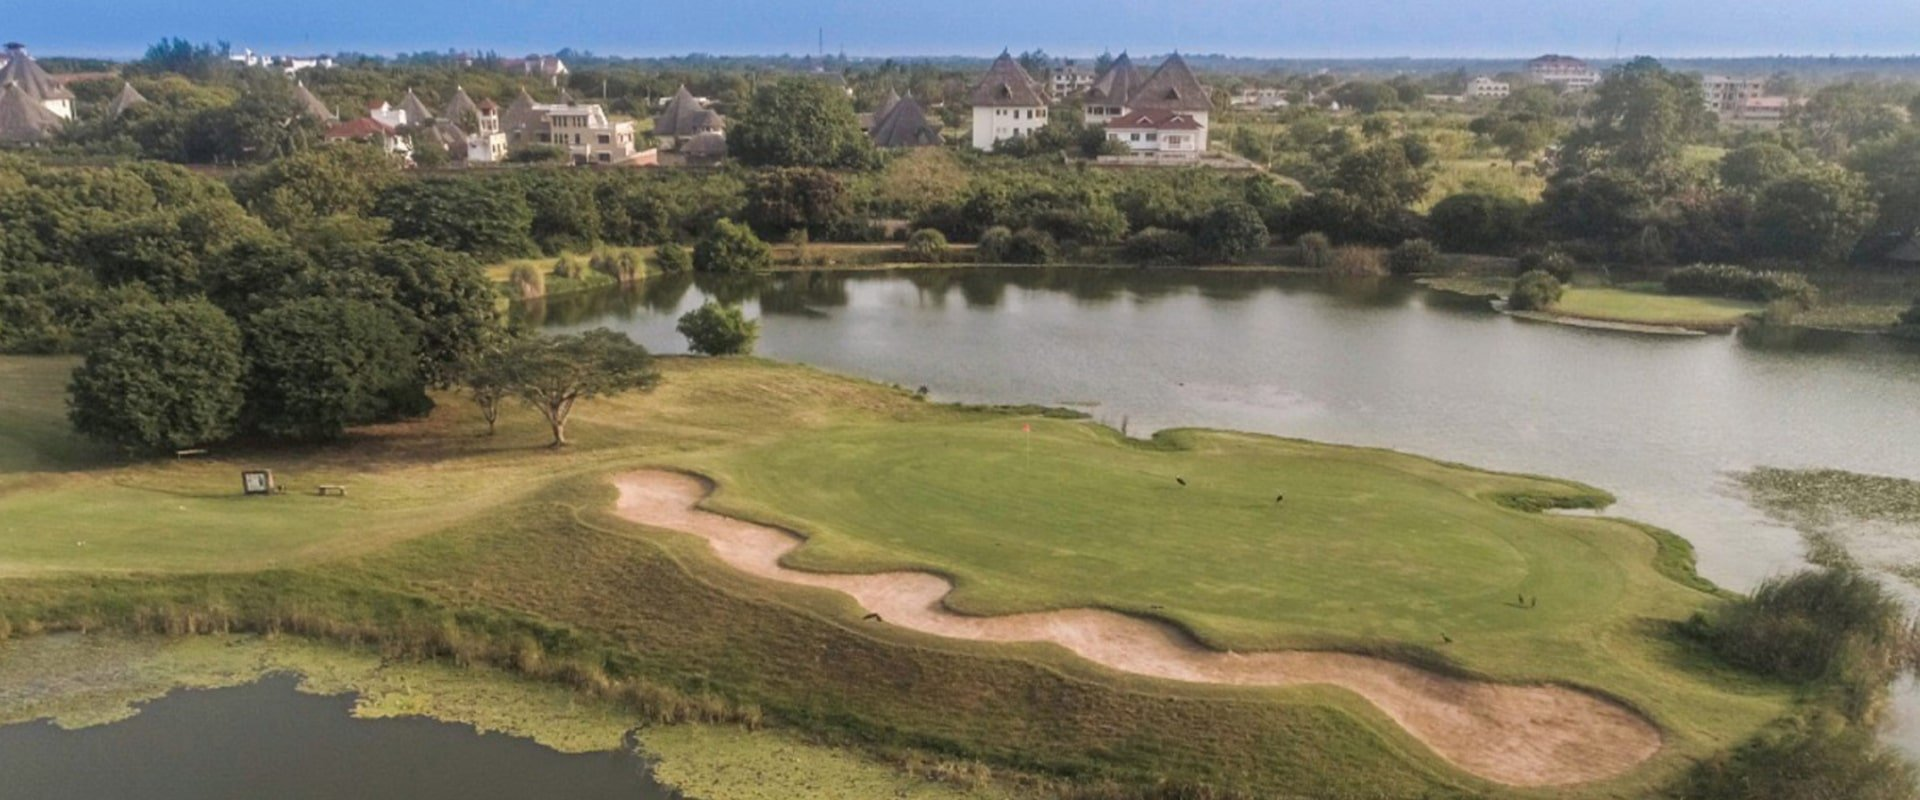 Play golf at the nearby 18 holes Golf Resort